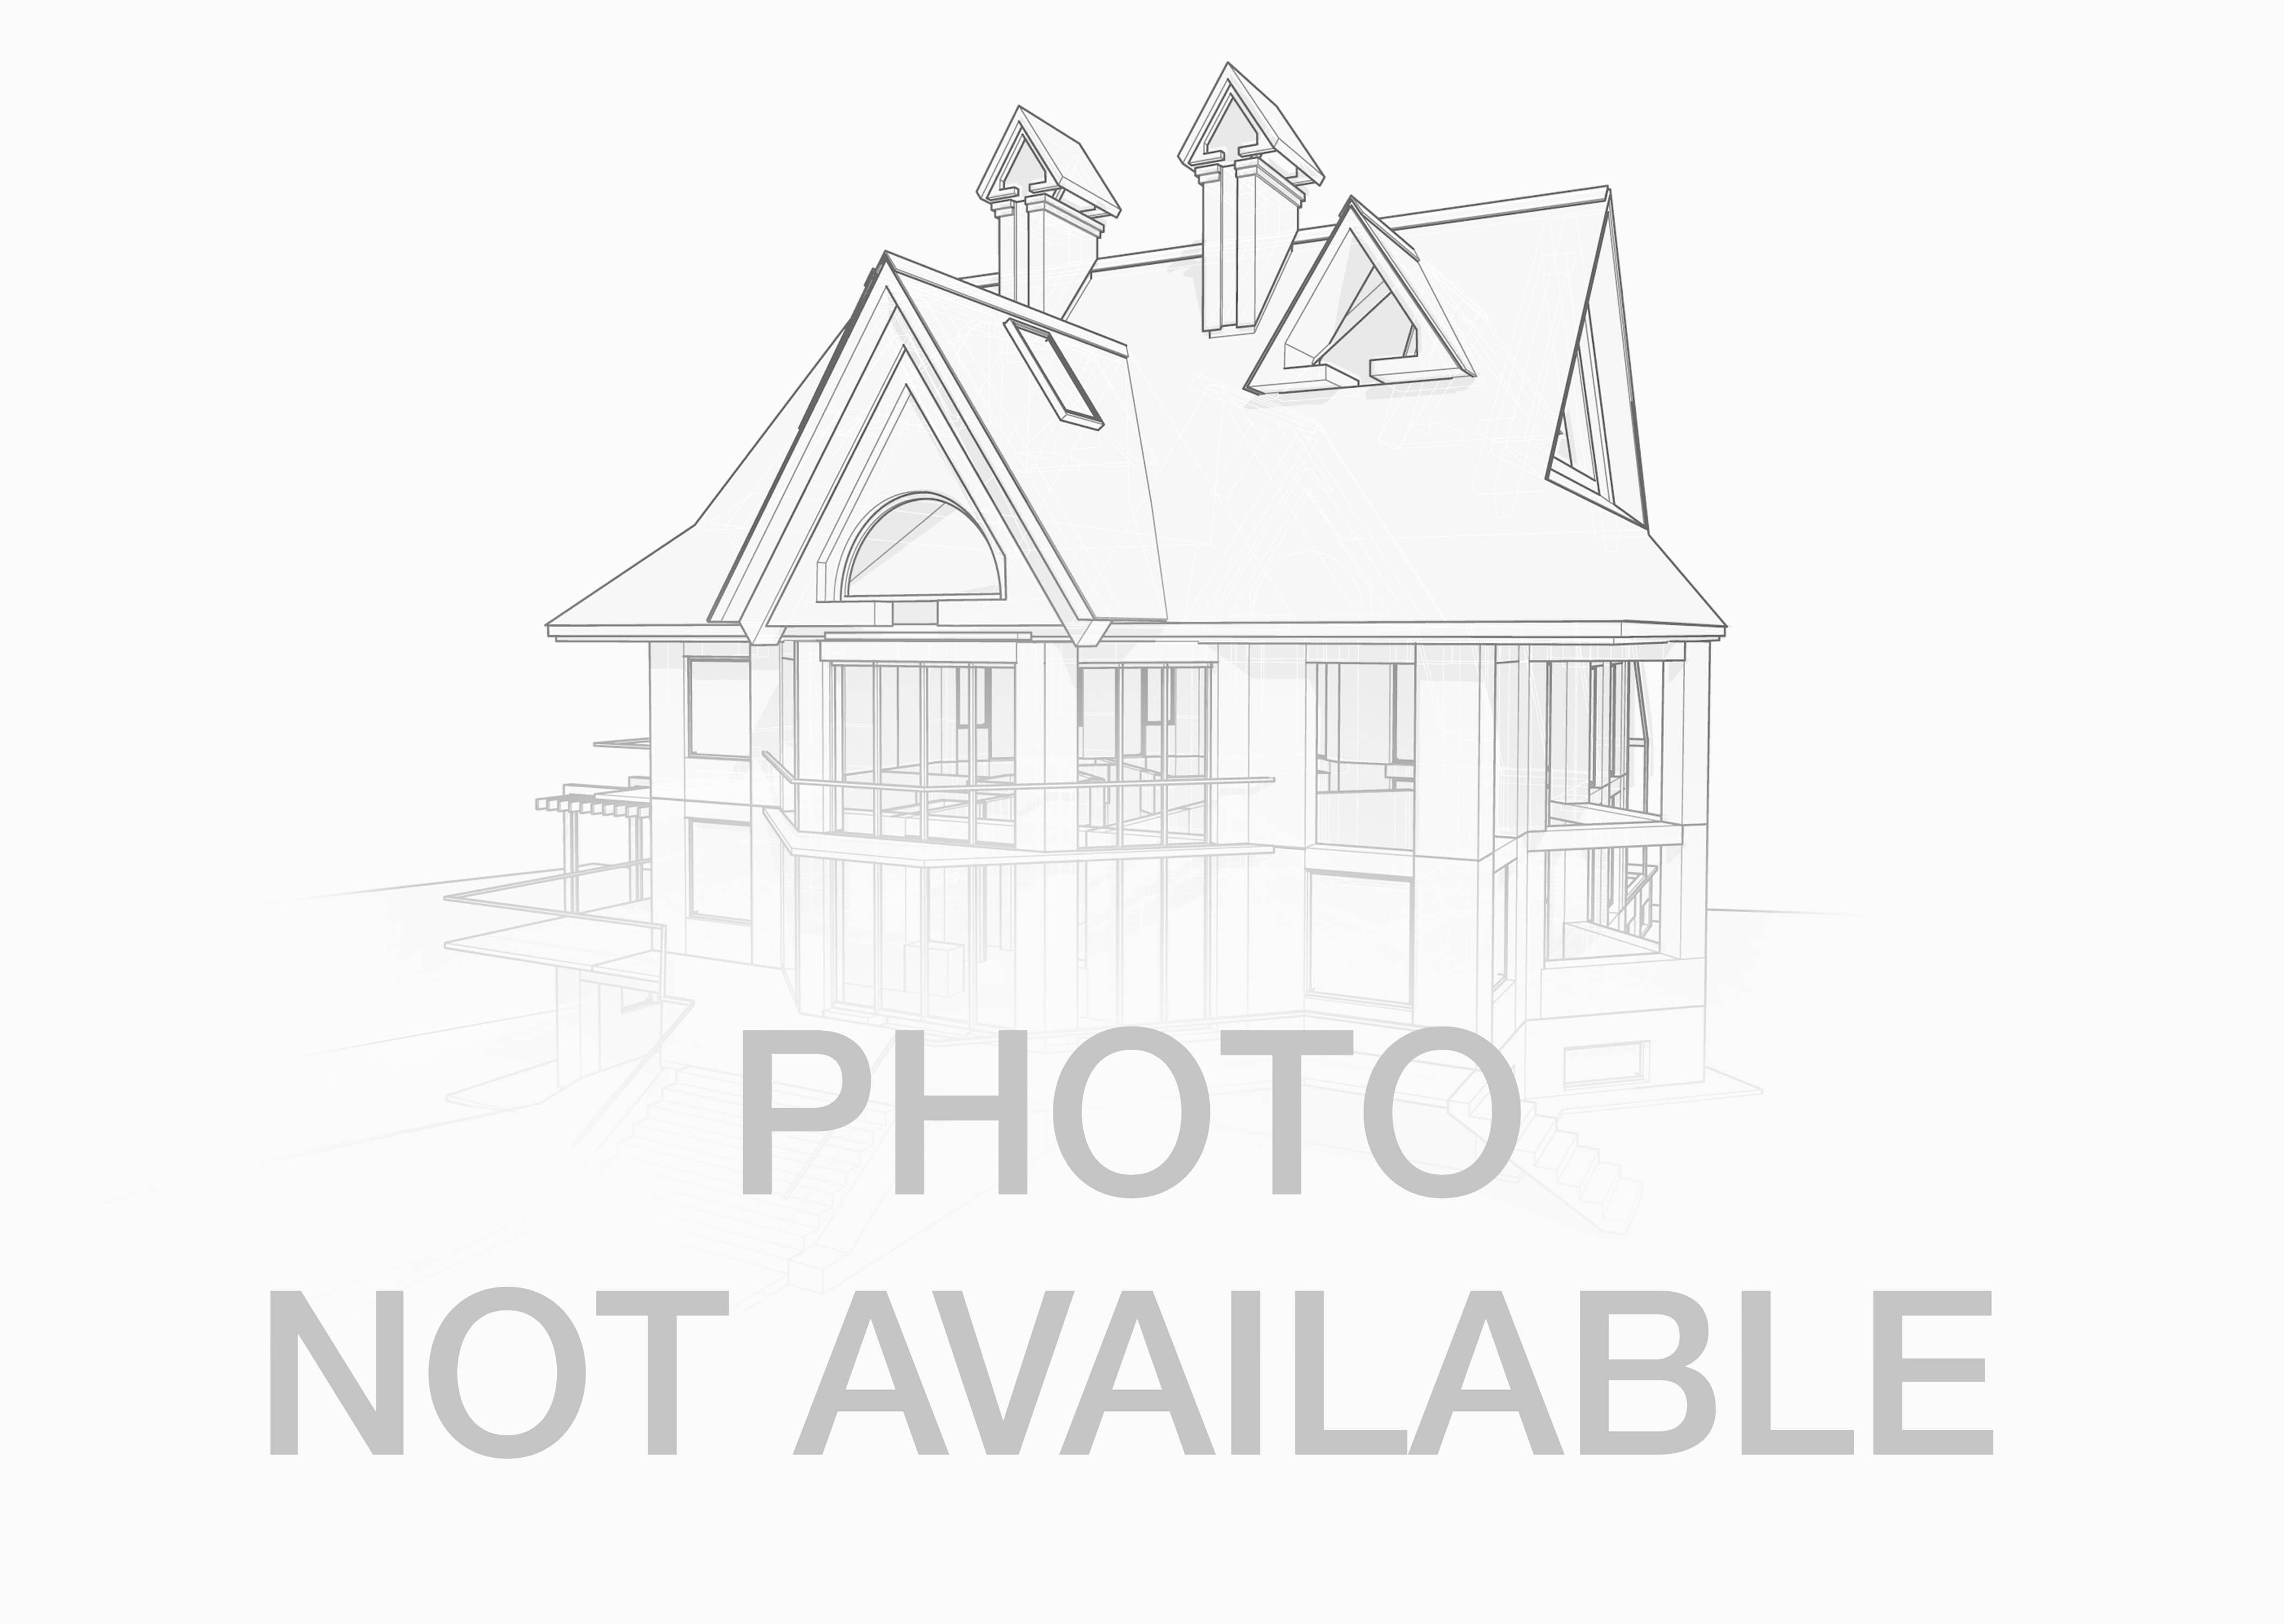 2070 Lakeview Dr, Akron, Oh 44333 - MLS ID 3973553 on